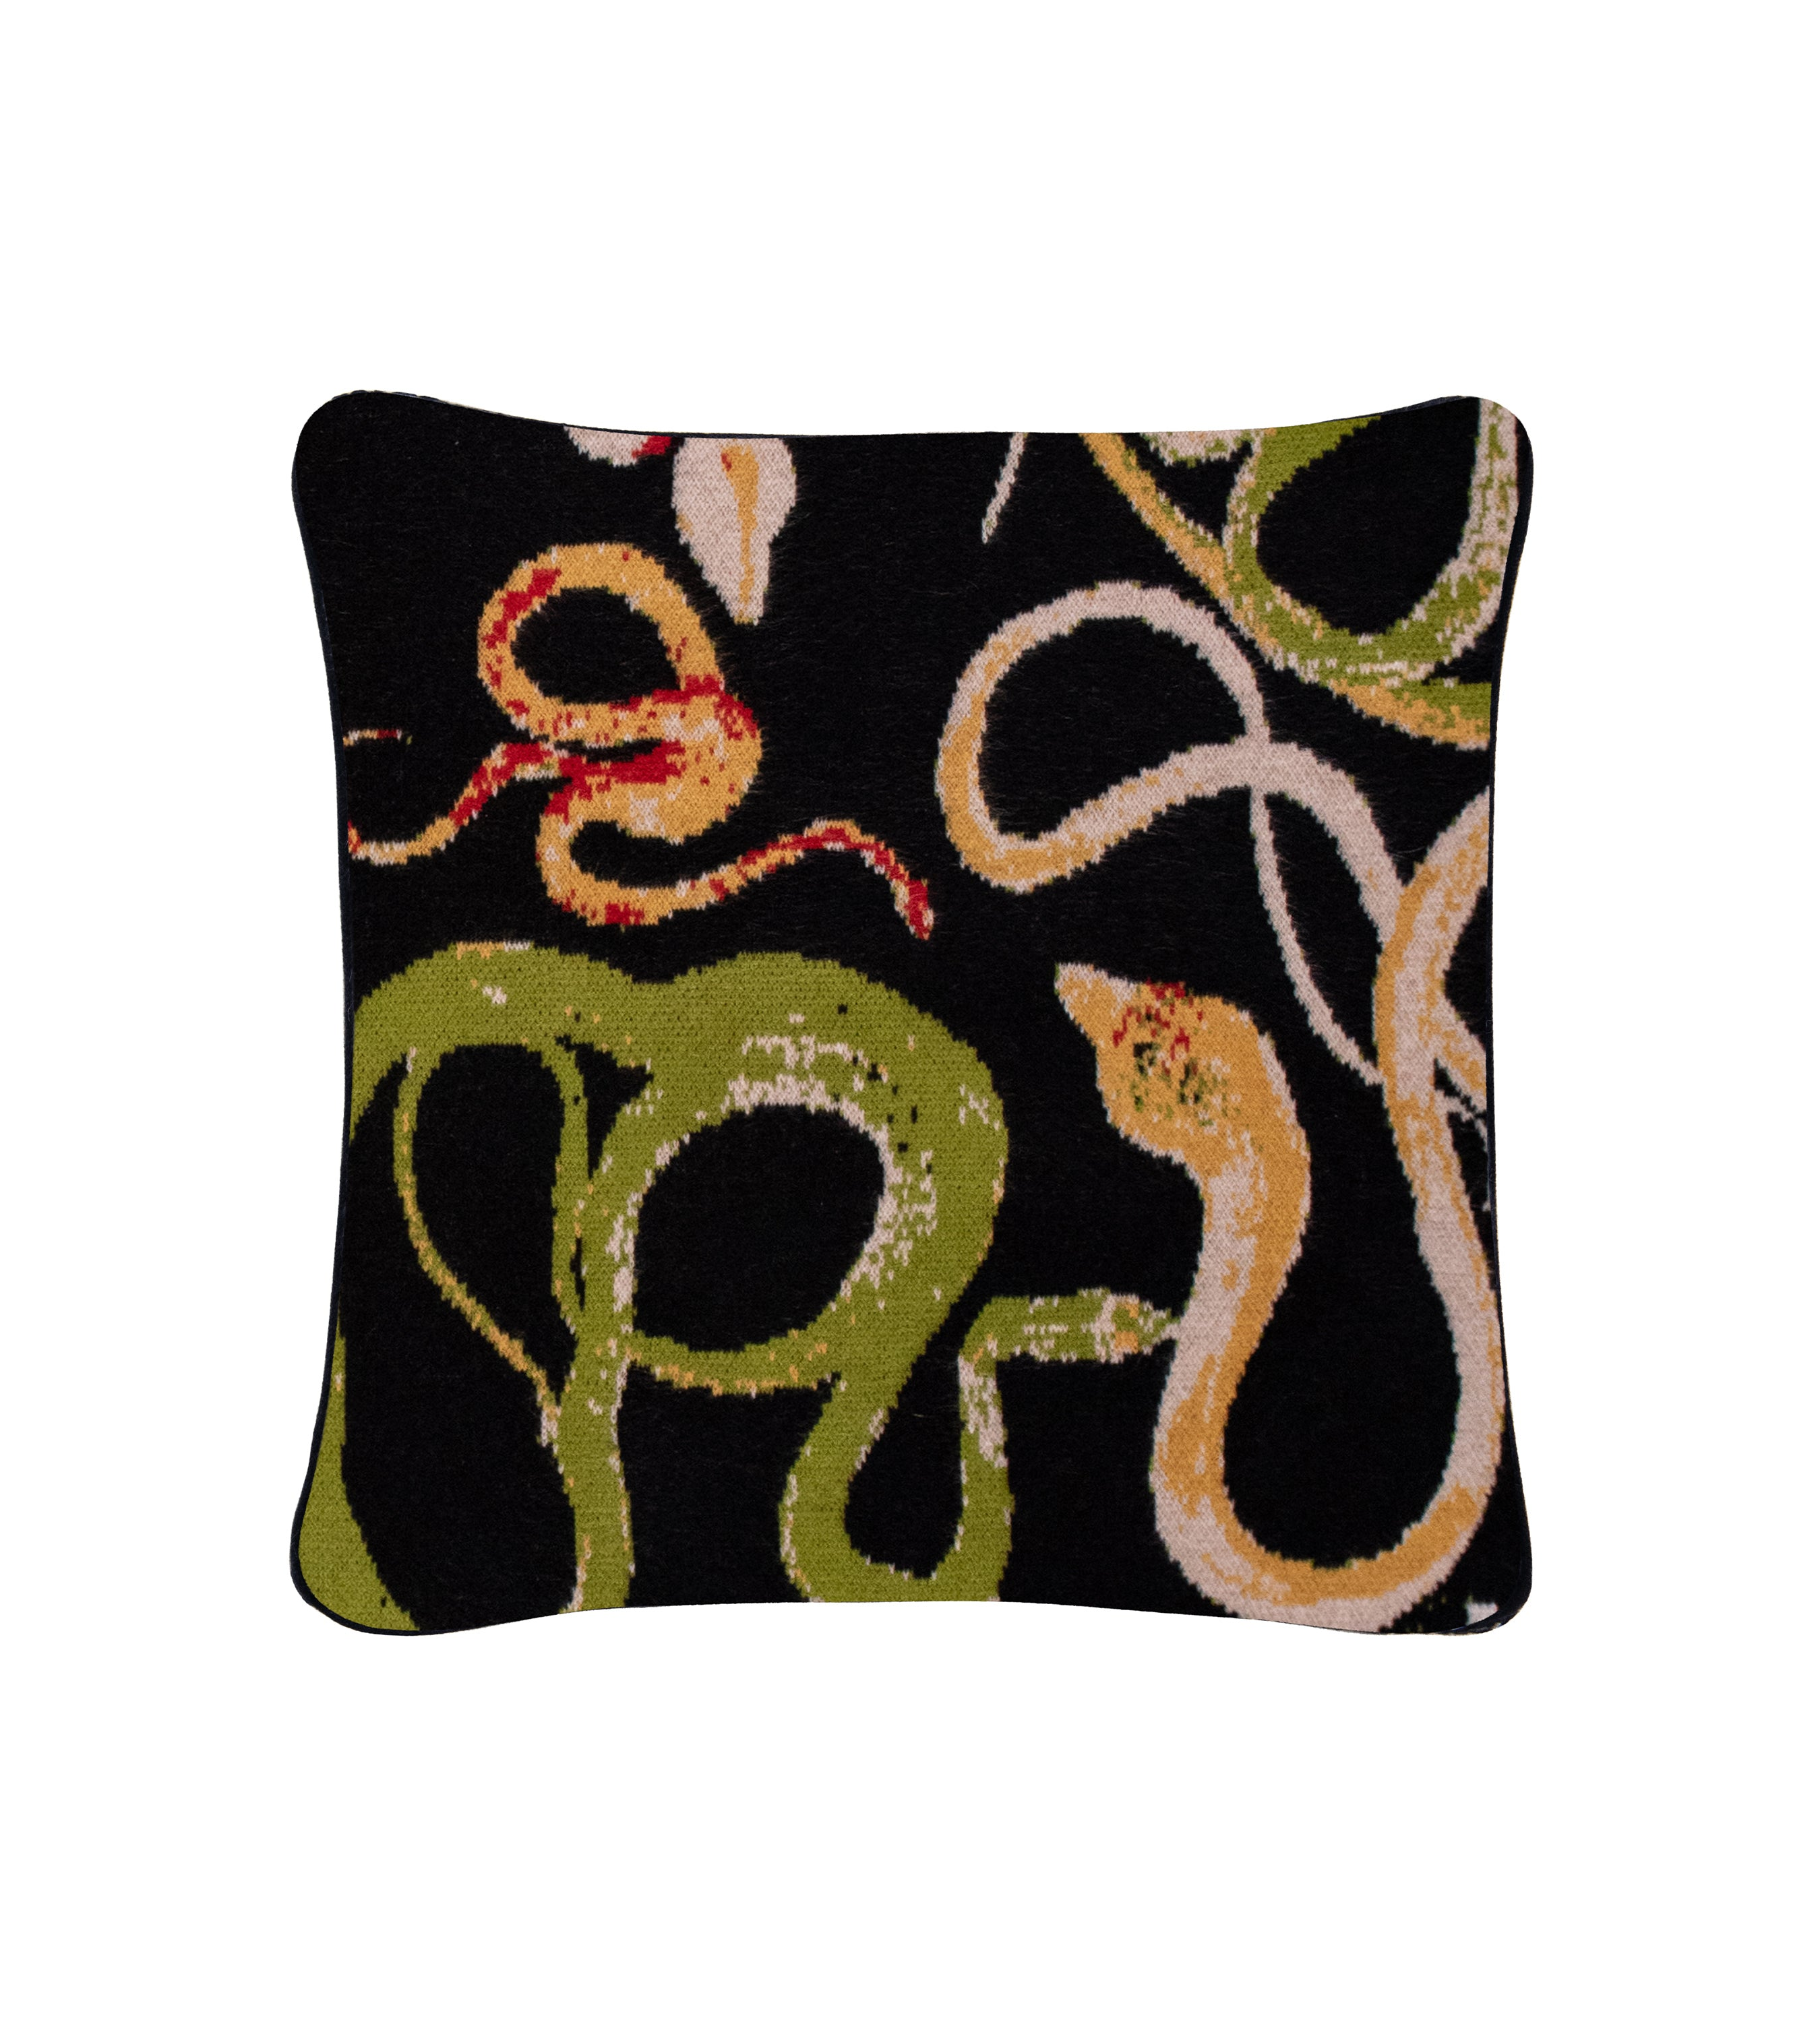 Voutsa x Saved NY Snakes Cashmere Pillow